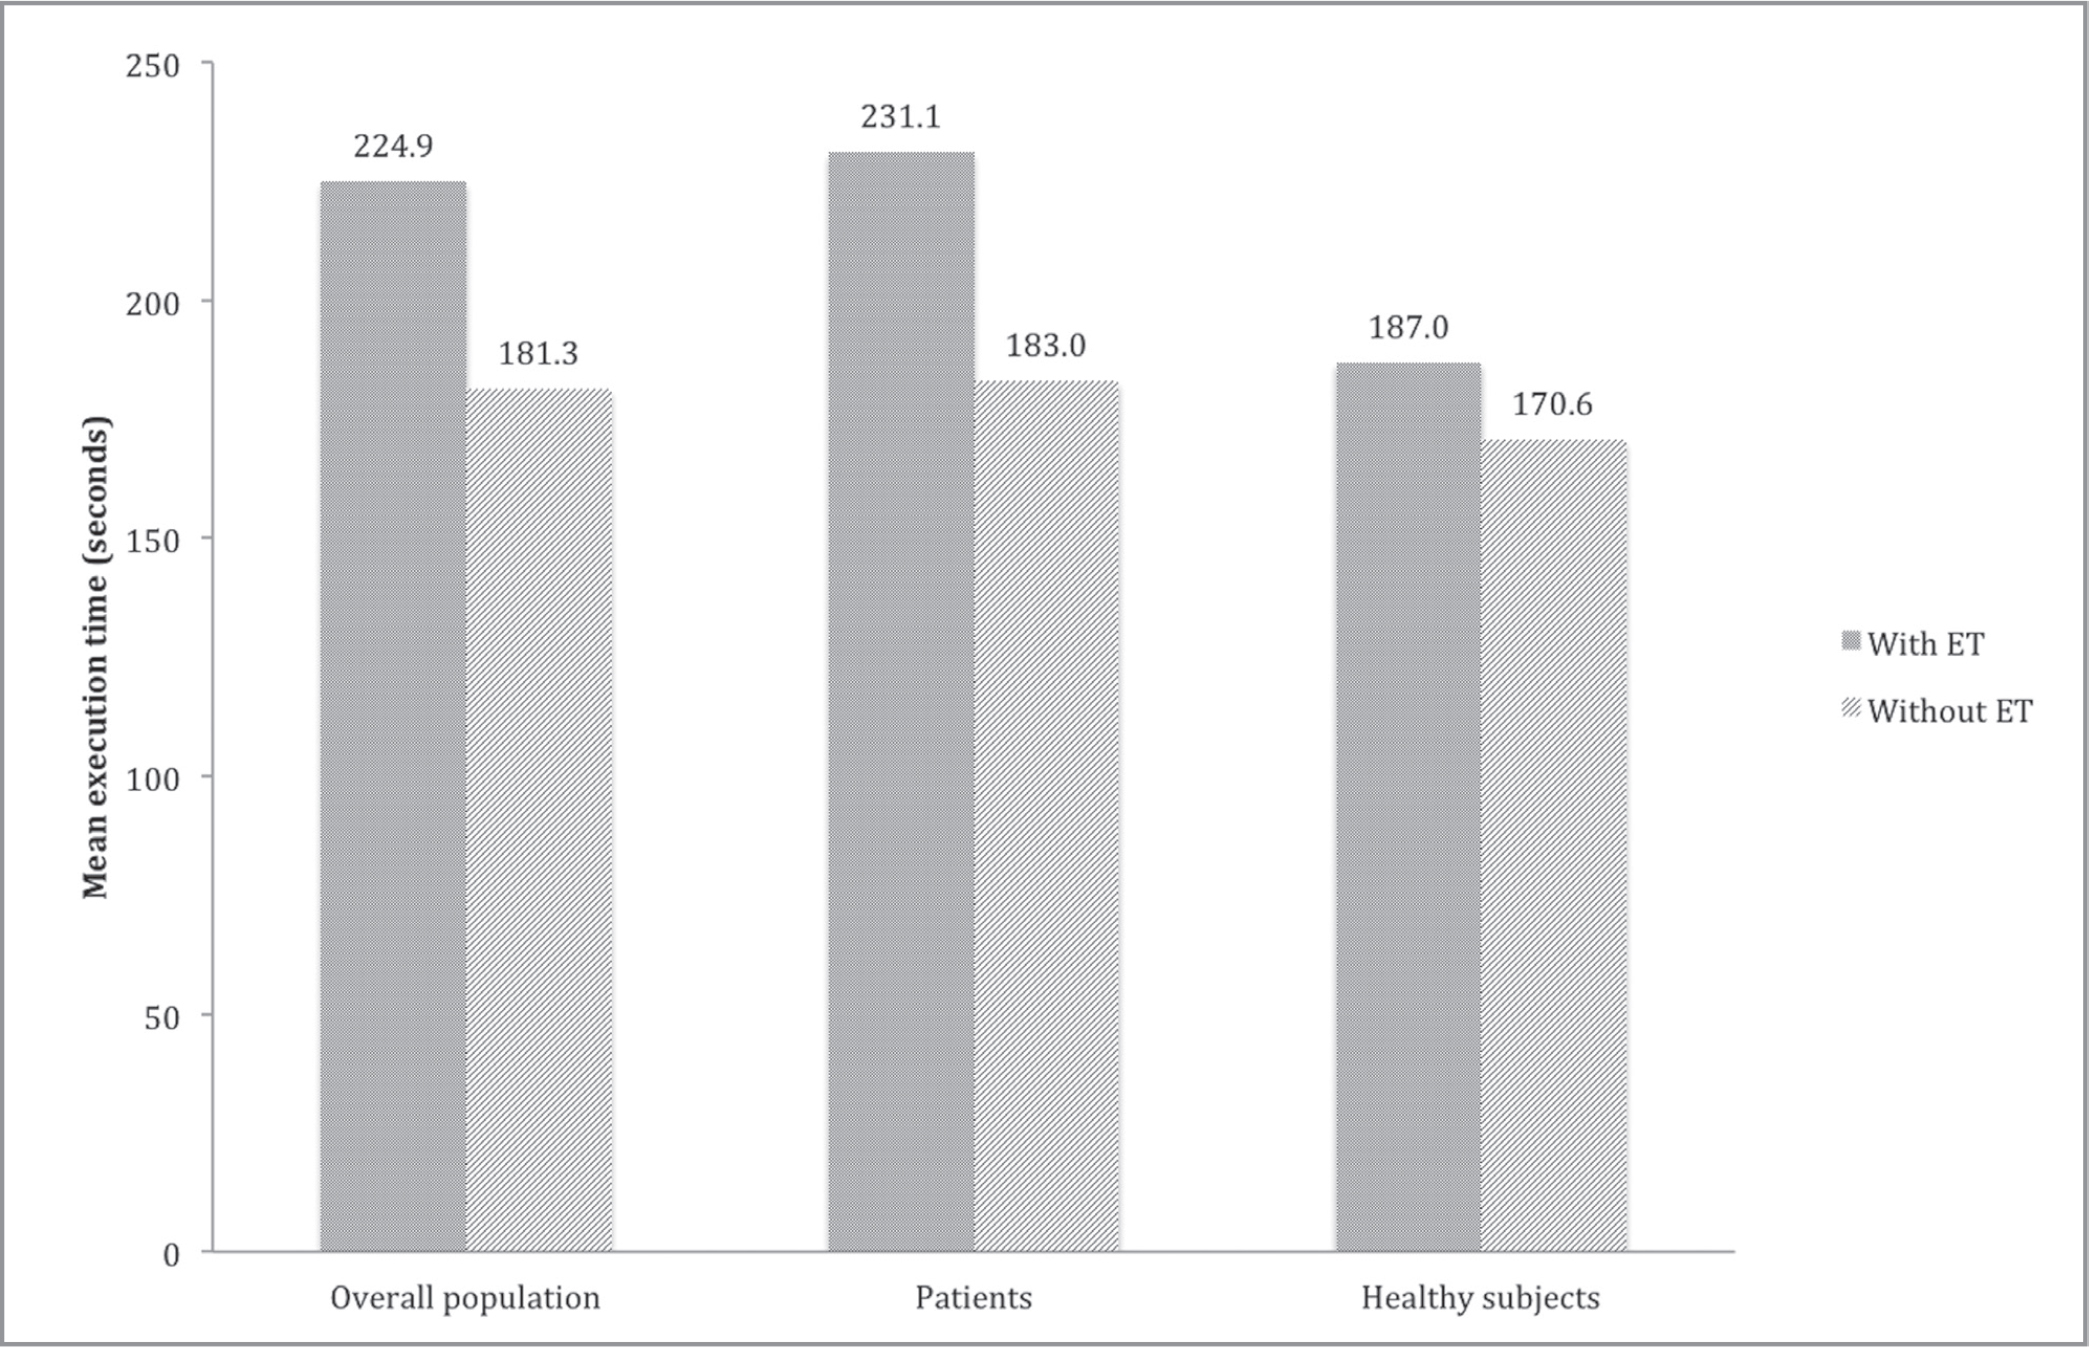 Mean execution time required by the examination with and without eye-tracking in the overall population and in the two groups separately (patients and healthy subjects).